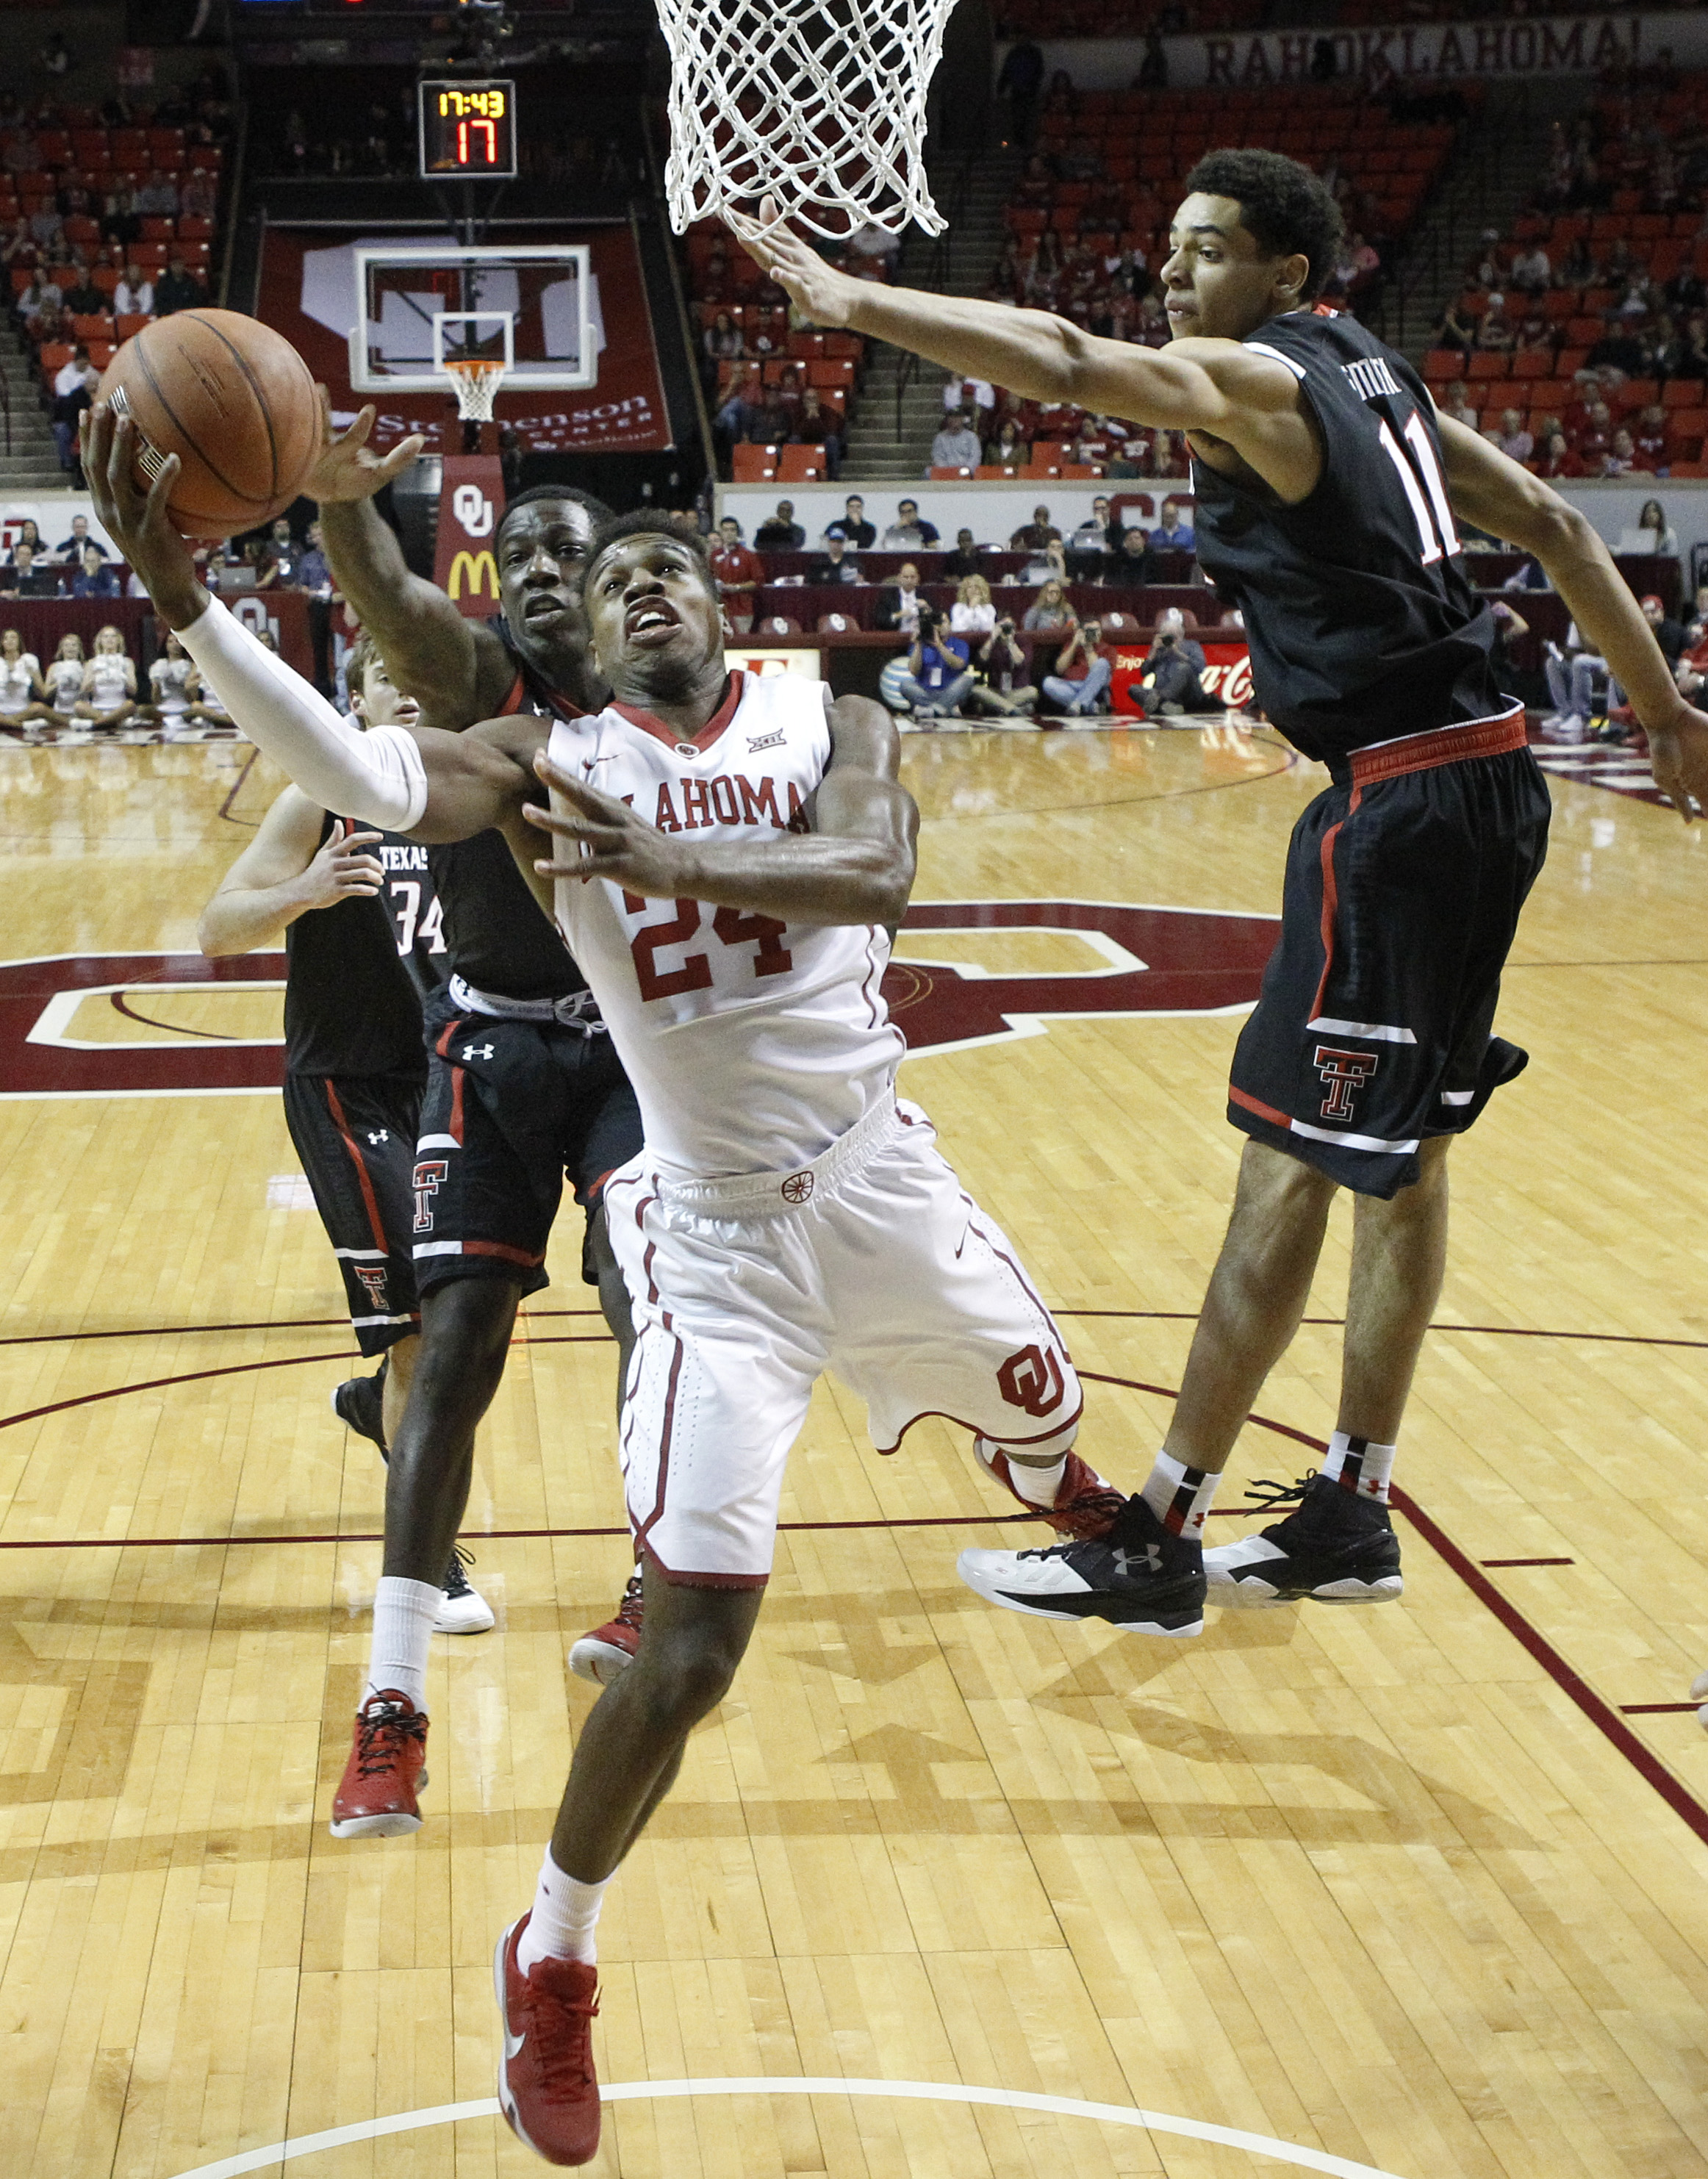 Oklahoma guard Buddy Hield shoots between Texas Tech guard Devaugntah Williams, left, and forward Zach Smith during the first half of an NCAA college basketball game in Norman, Okla., Tuesday, Jan. 26, 2016. (AP Photo/Sue Ogrocki)